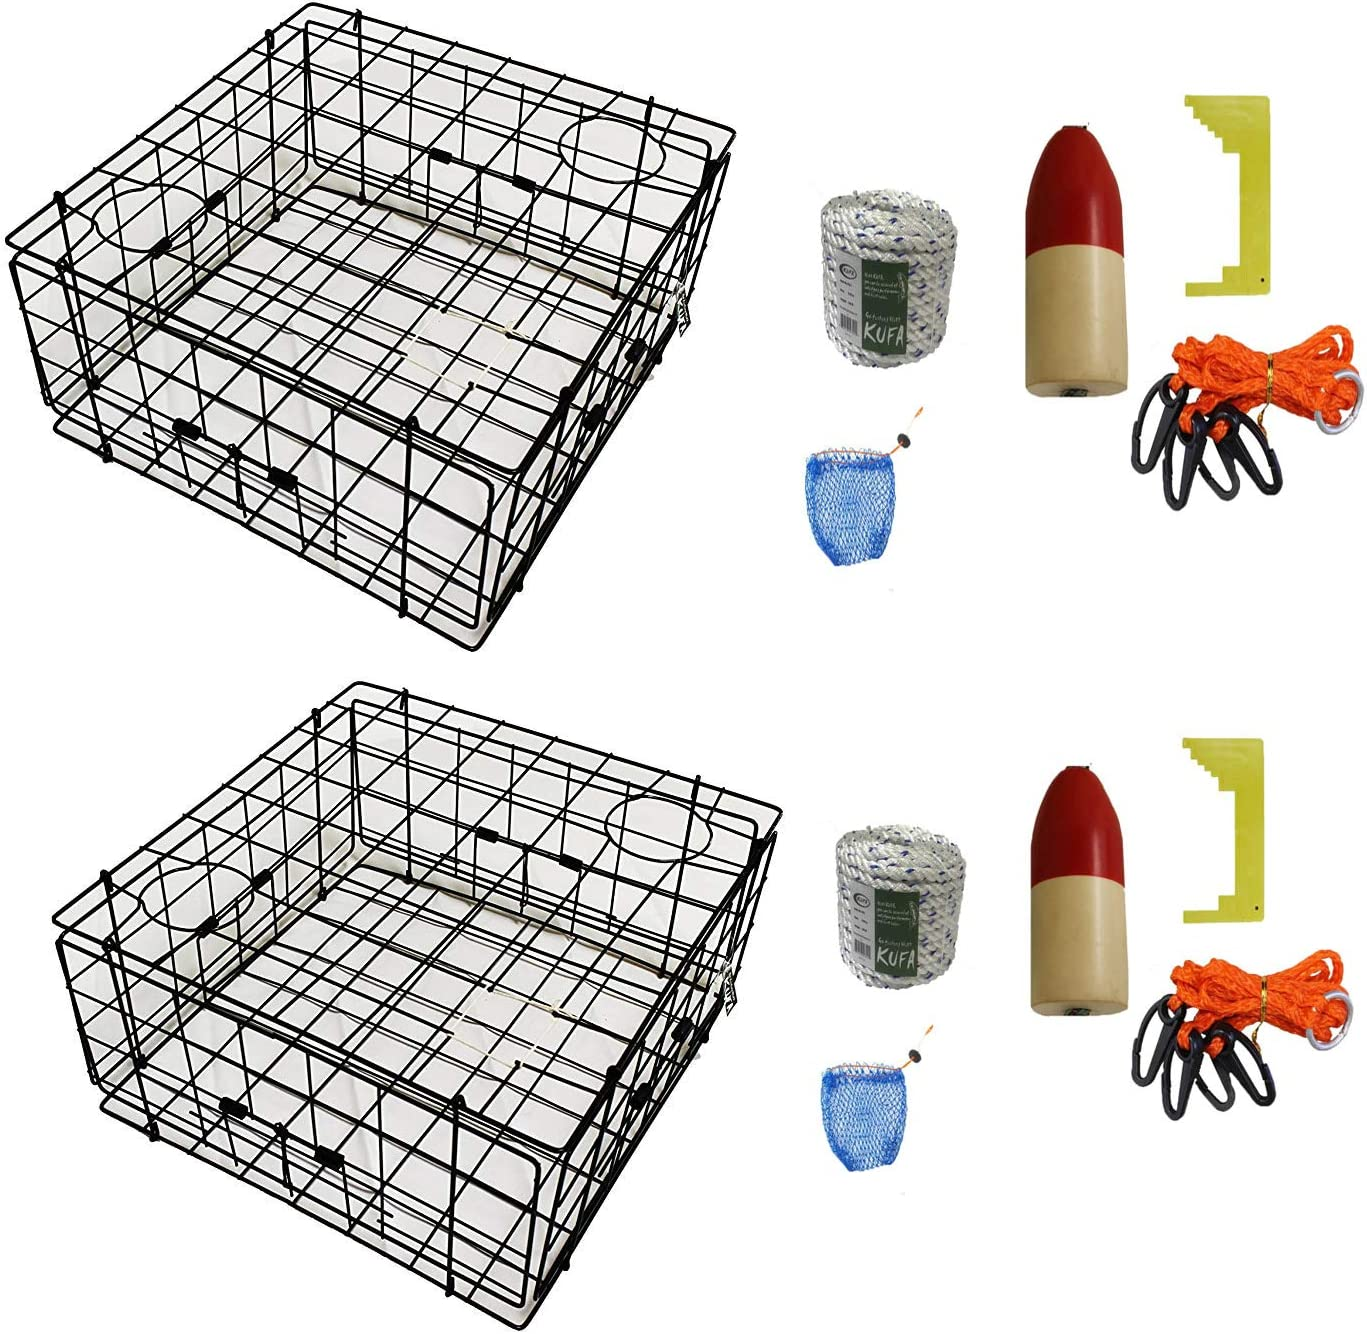 KUFA 2-Pack Vinyl Sale Coated Crab Accessory New item Kitâ Crabbing with Trap